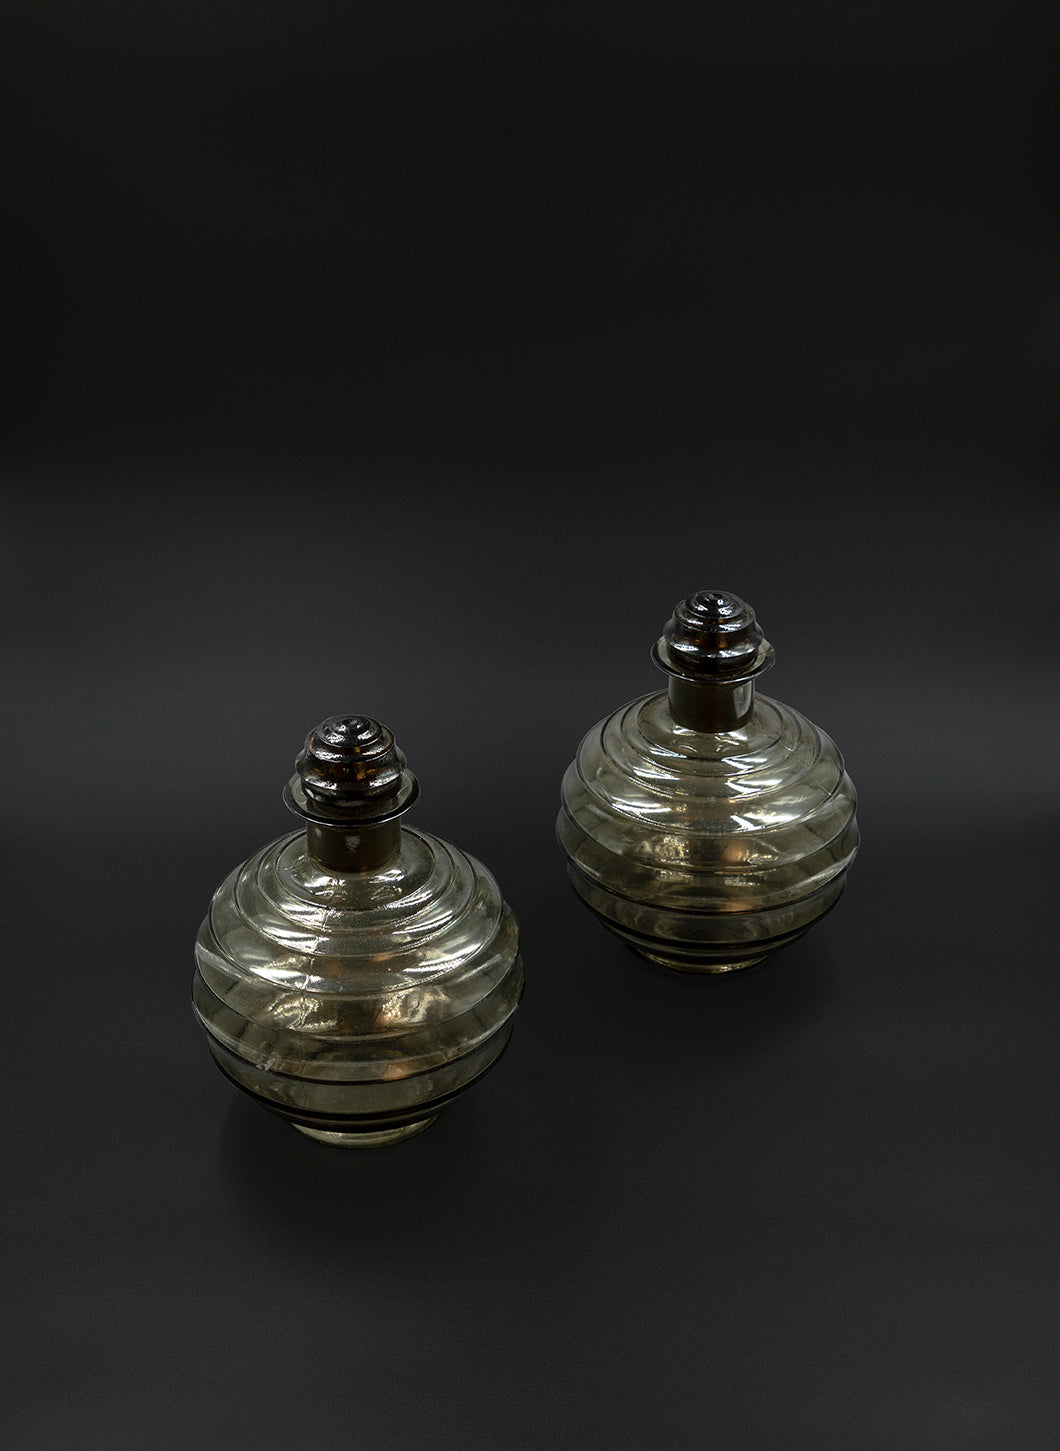 Pair of Fluted Smoked Glass Decanters